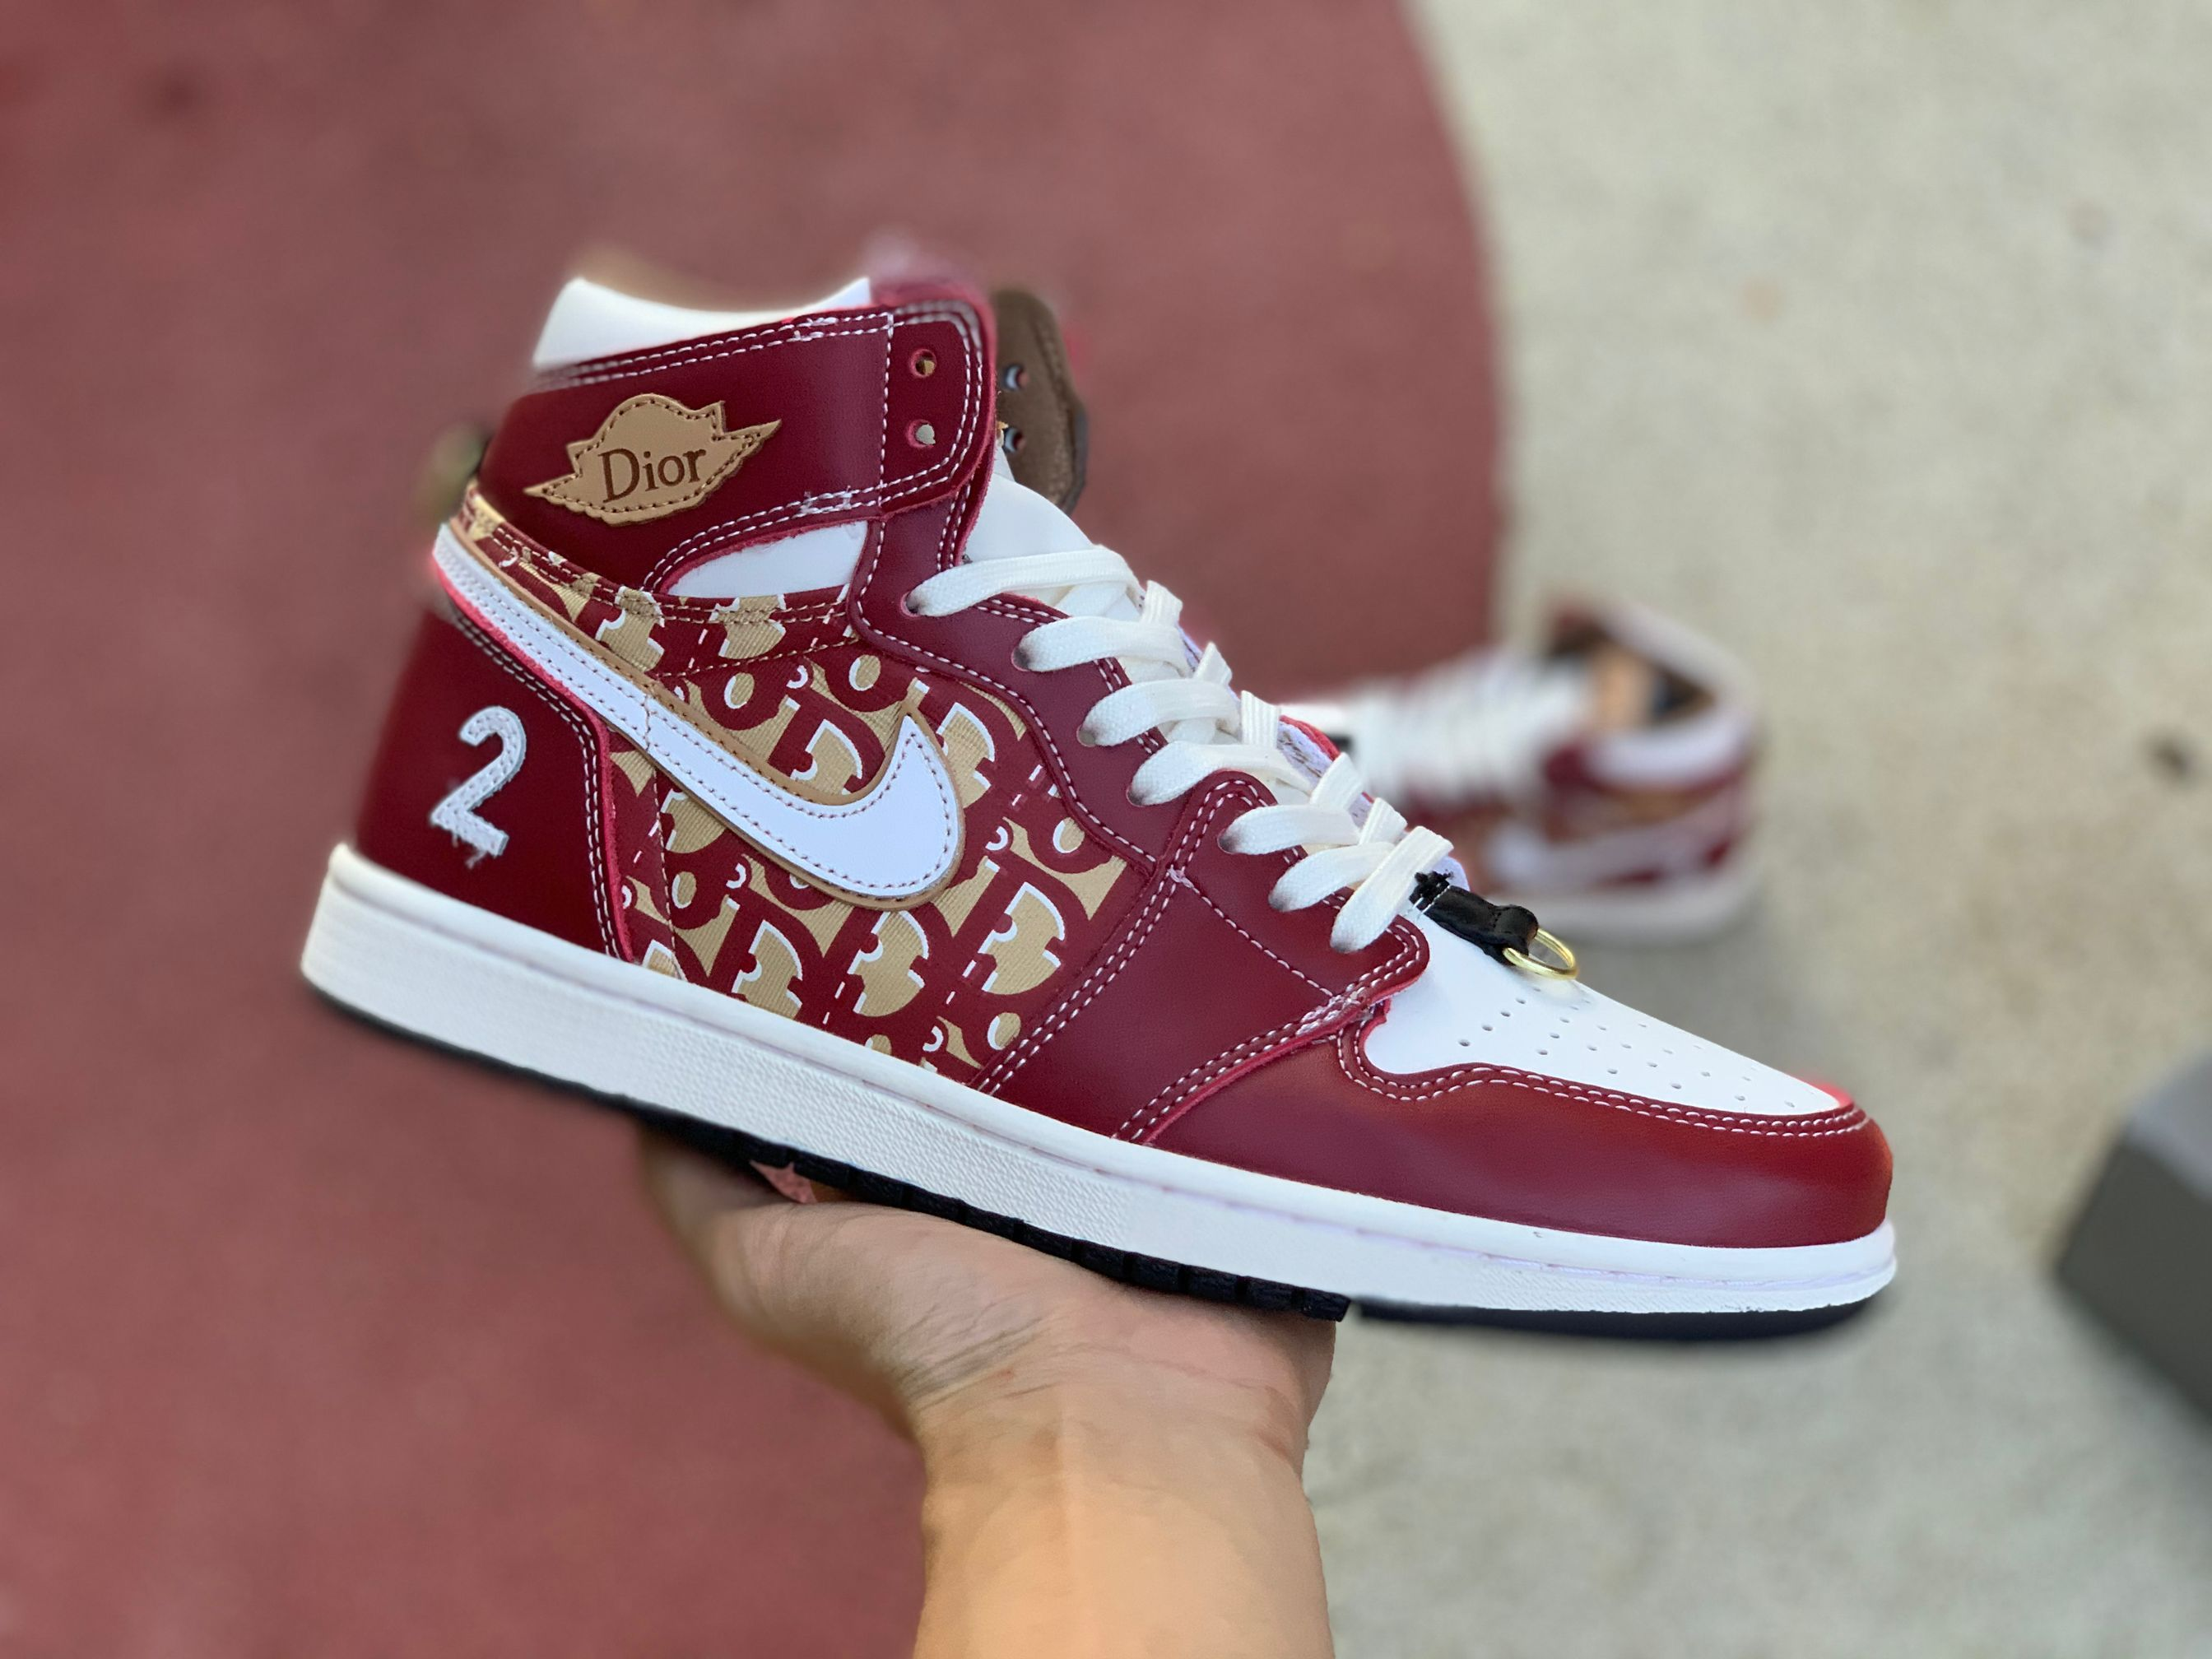 Dior x Air Jordan 1 Wine Red White Shoes For Sale in 2020